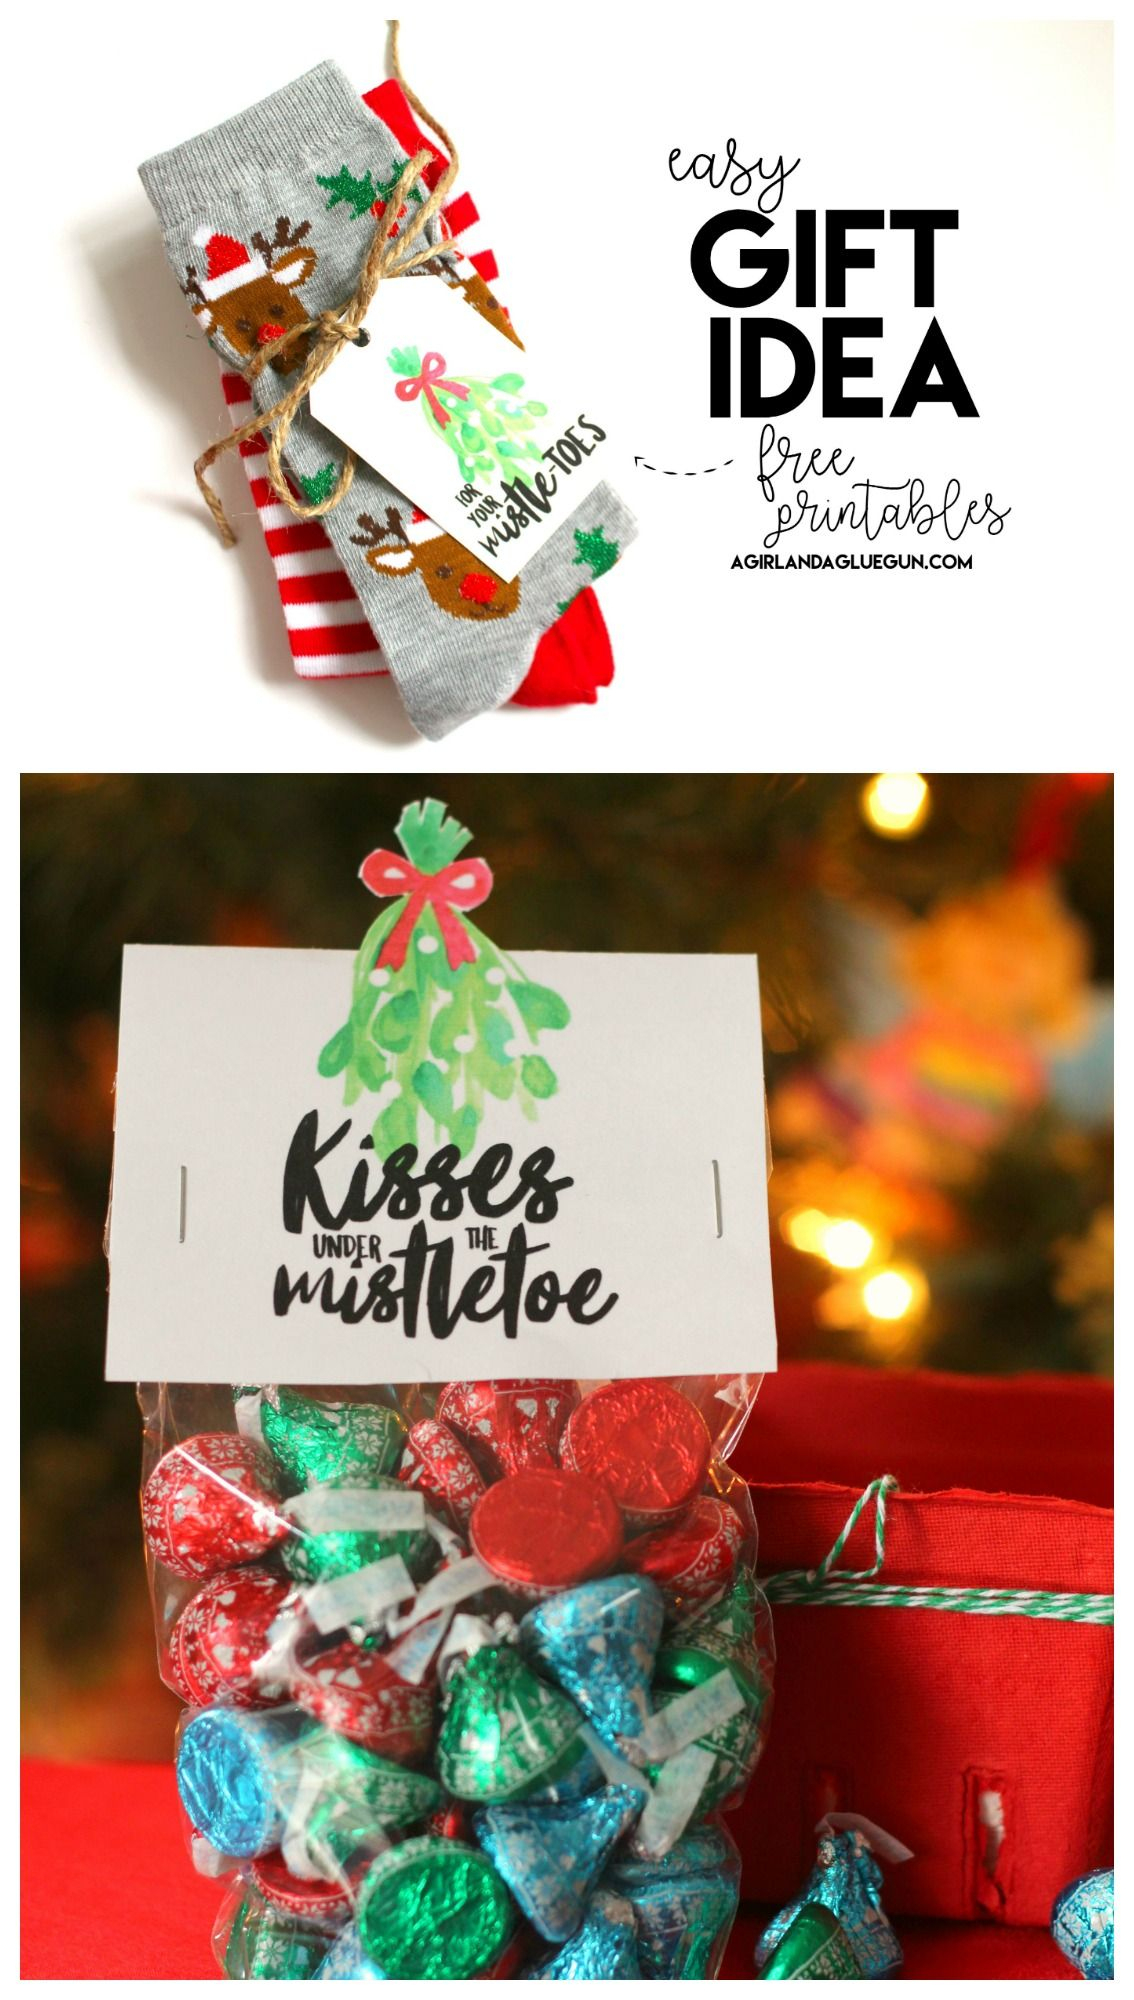 Mistletoe Gift Ideas-Free Printables | Christmas Ideas & Recipes - Free Printable Mistletoe Tags